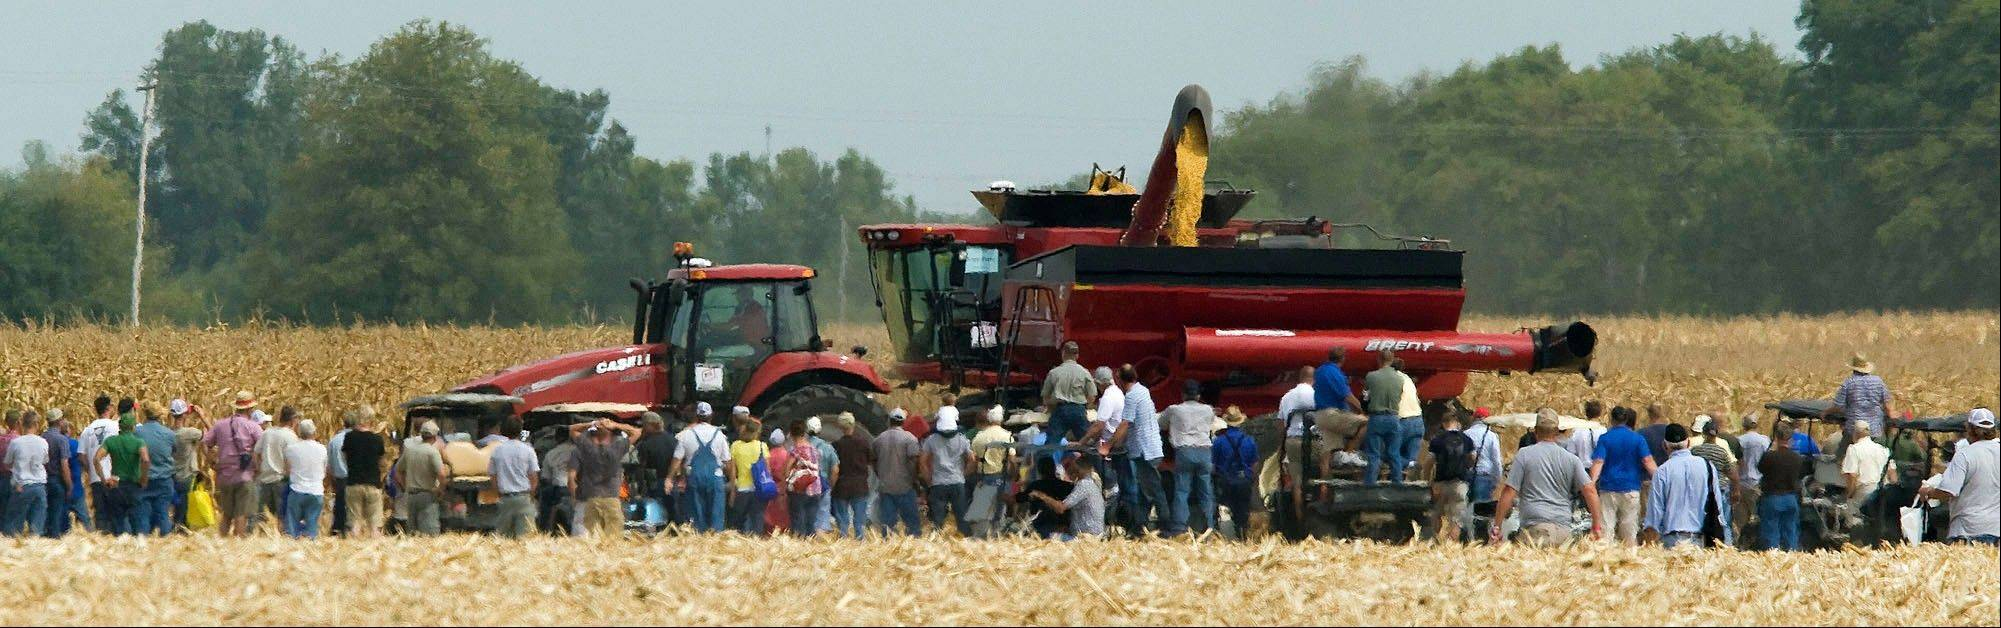 Visitors to the 2011 Farm Progress Show in Decatur, line the ropes to watch the field demonstrations.